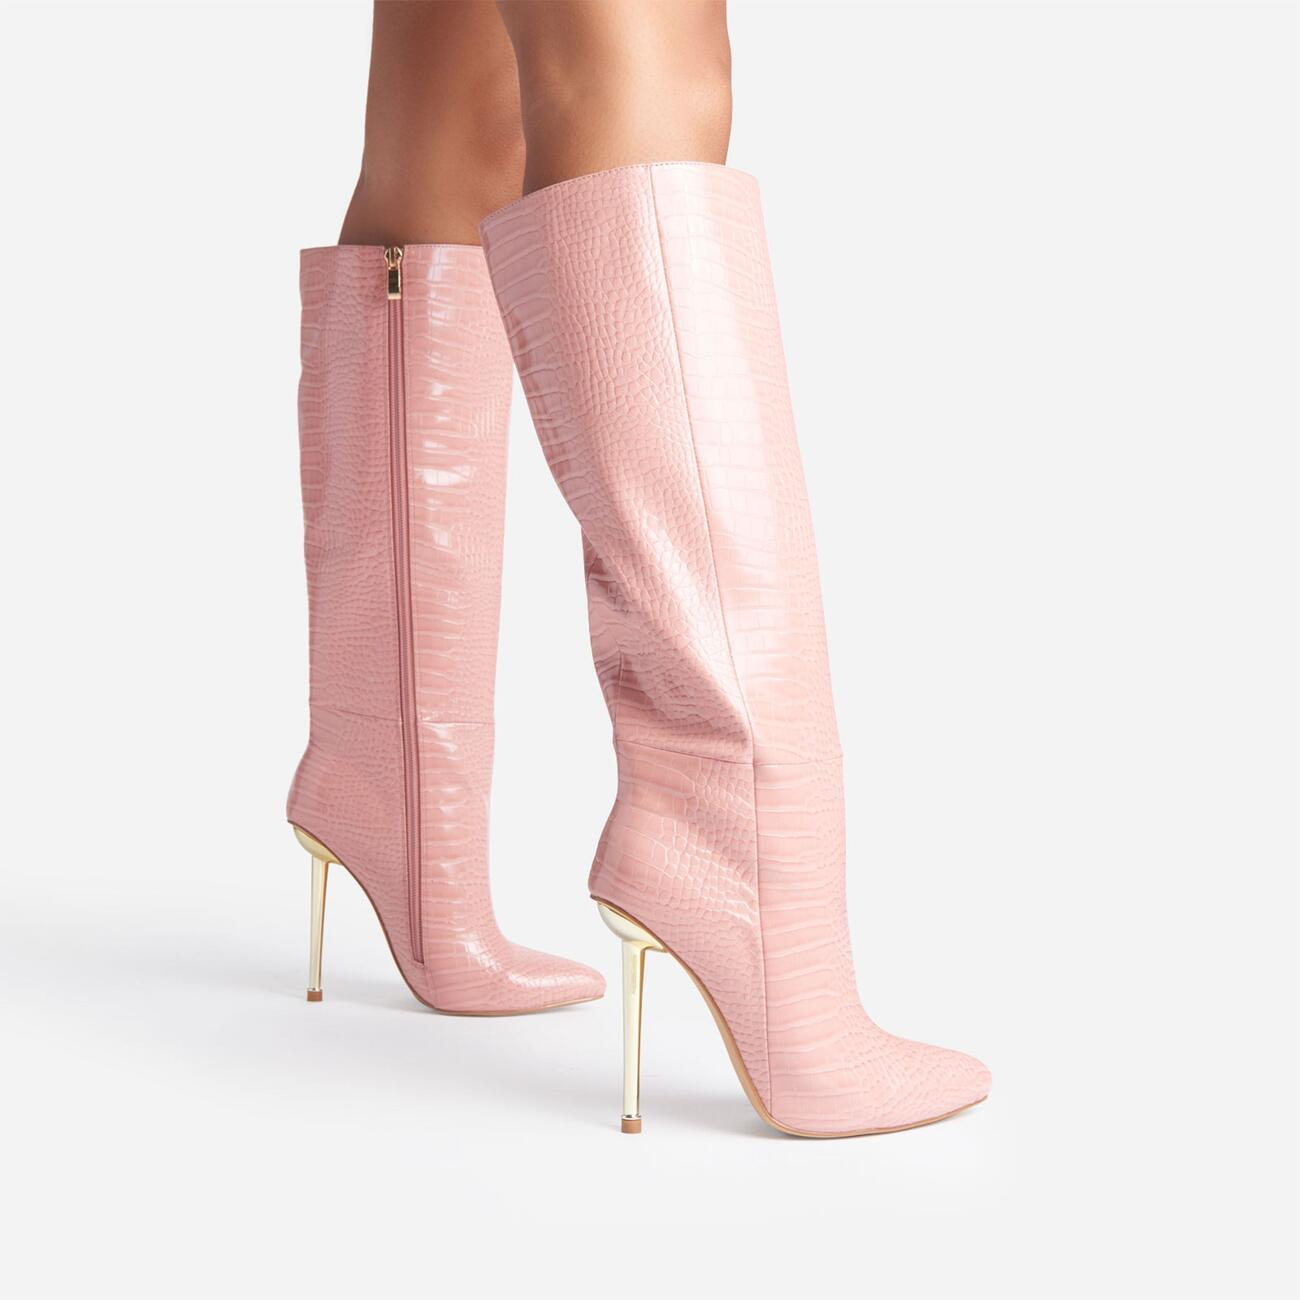 Clarity Metallic Heel Knee High Long Boots In Pink Croc Print Faux Leather Image 3